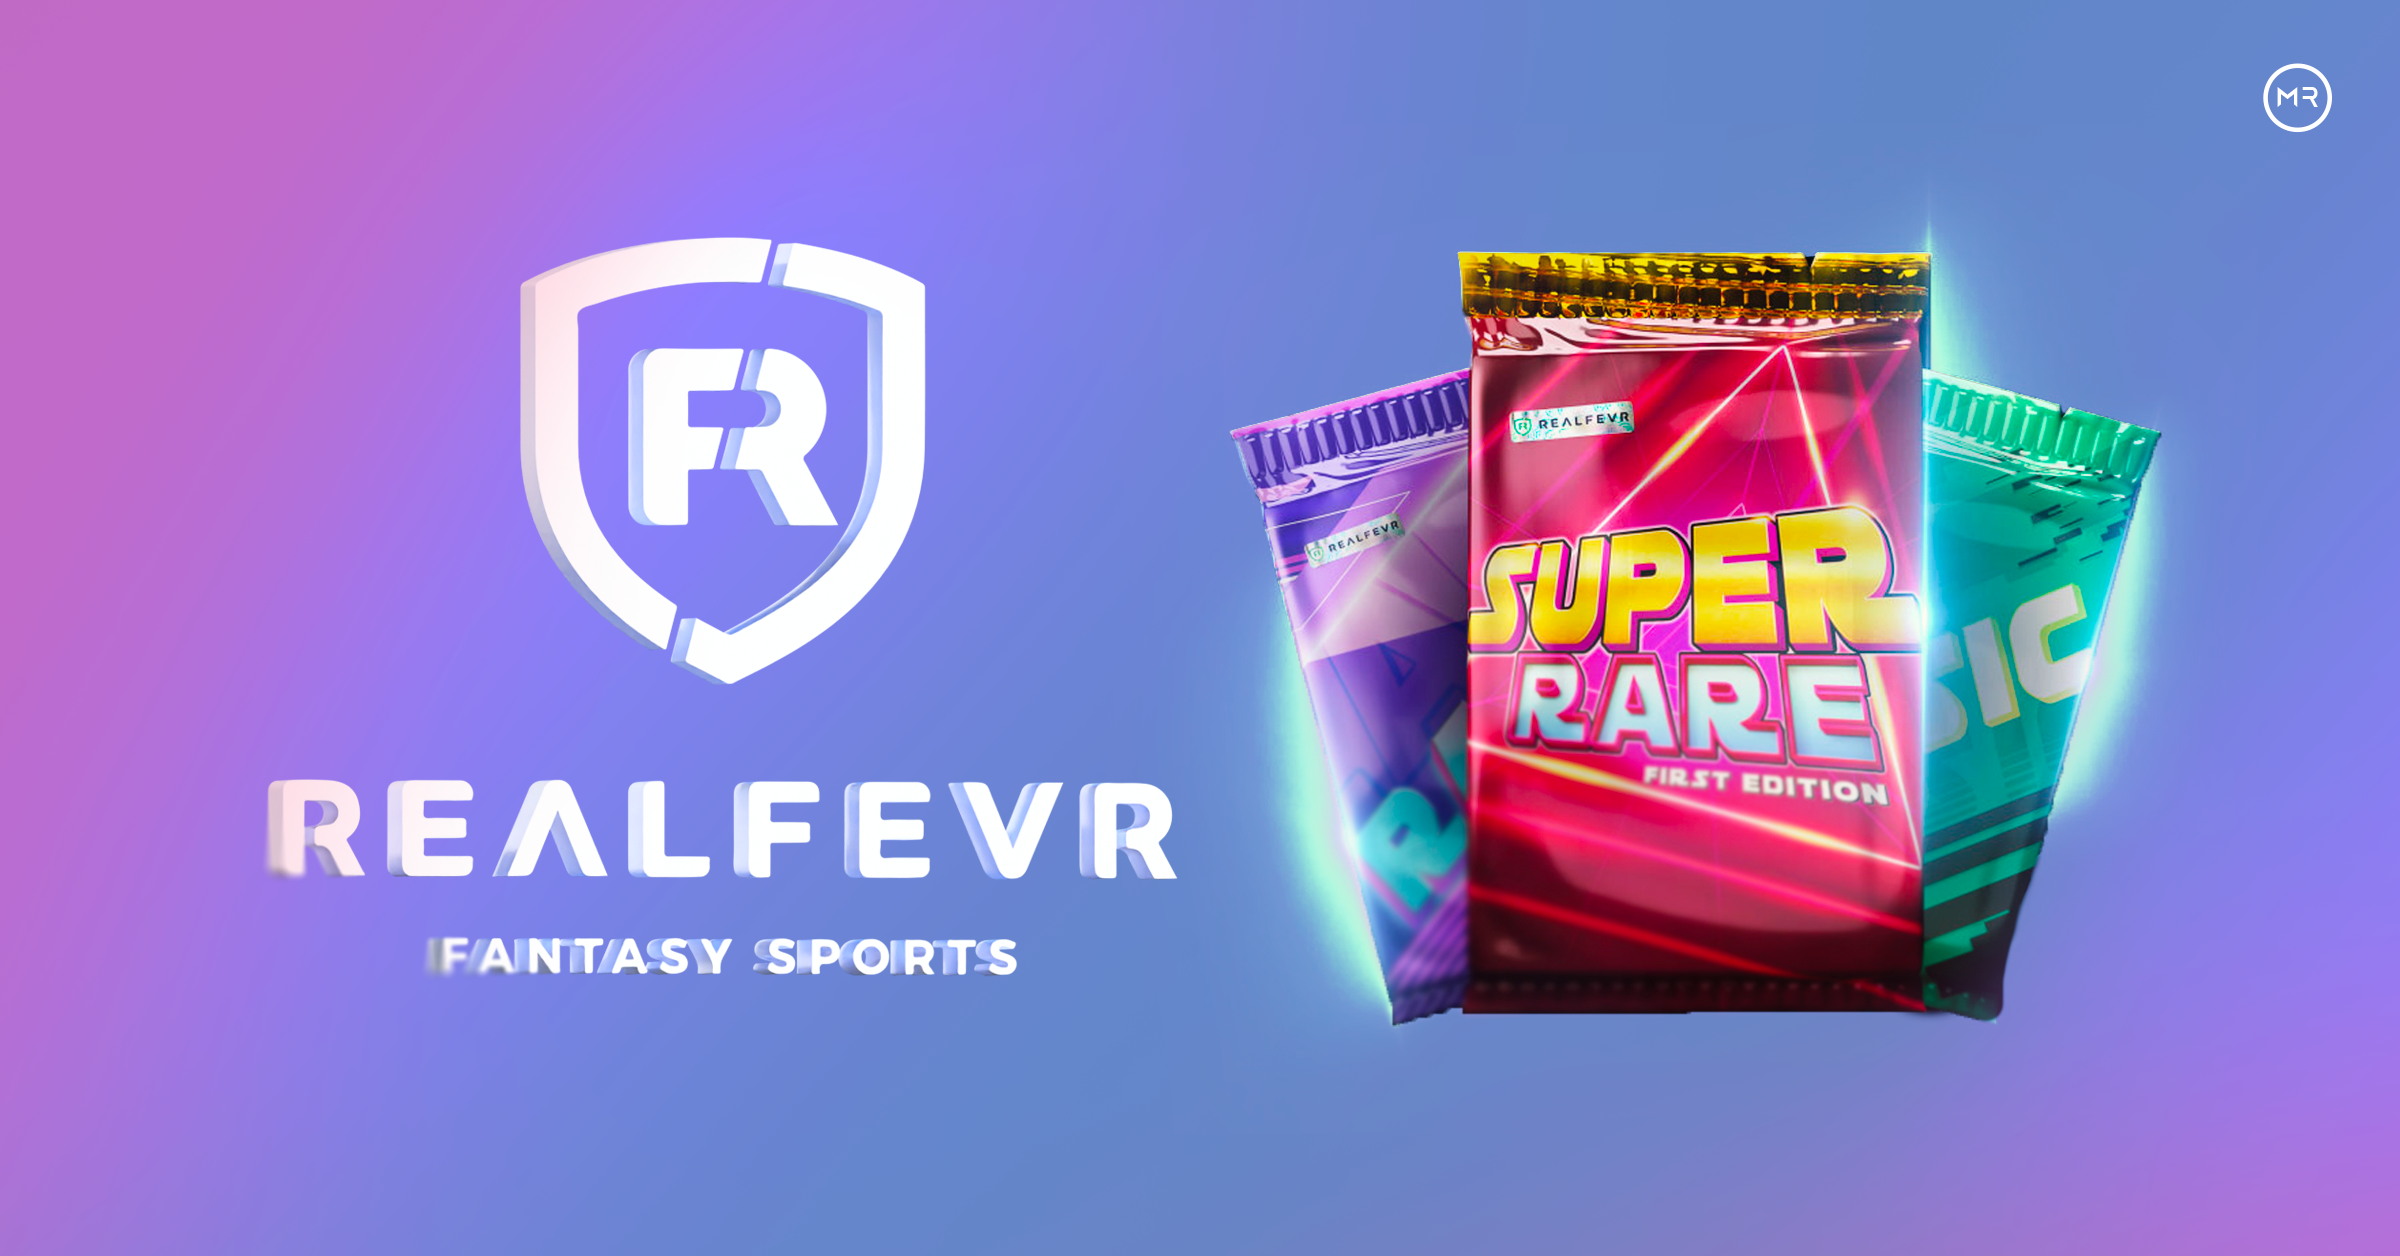 Everything you need to know about RealFevr, the first-ever NFT soccer highlight marketplace, including moments from players like like Cristiano Ronaldo.